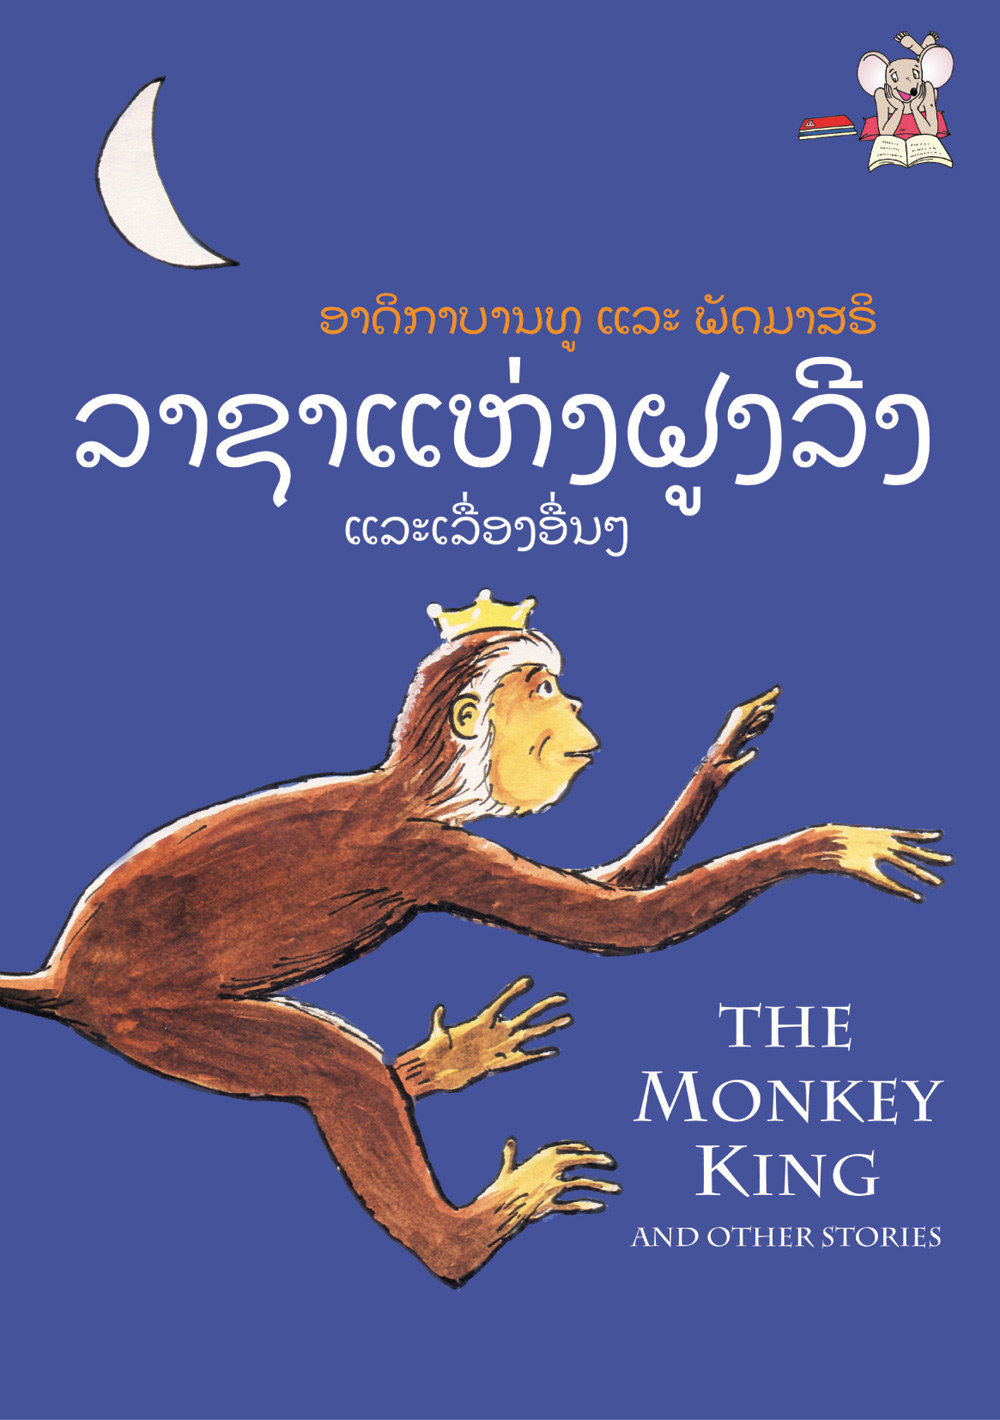 The Monkey King large book cover, published in Lao language